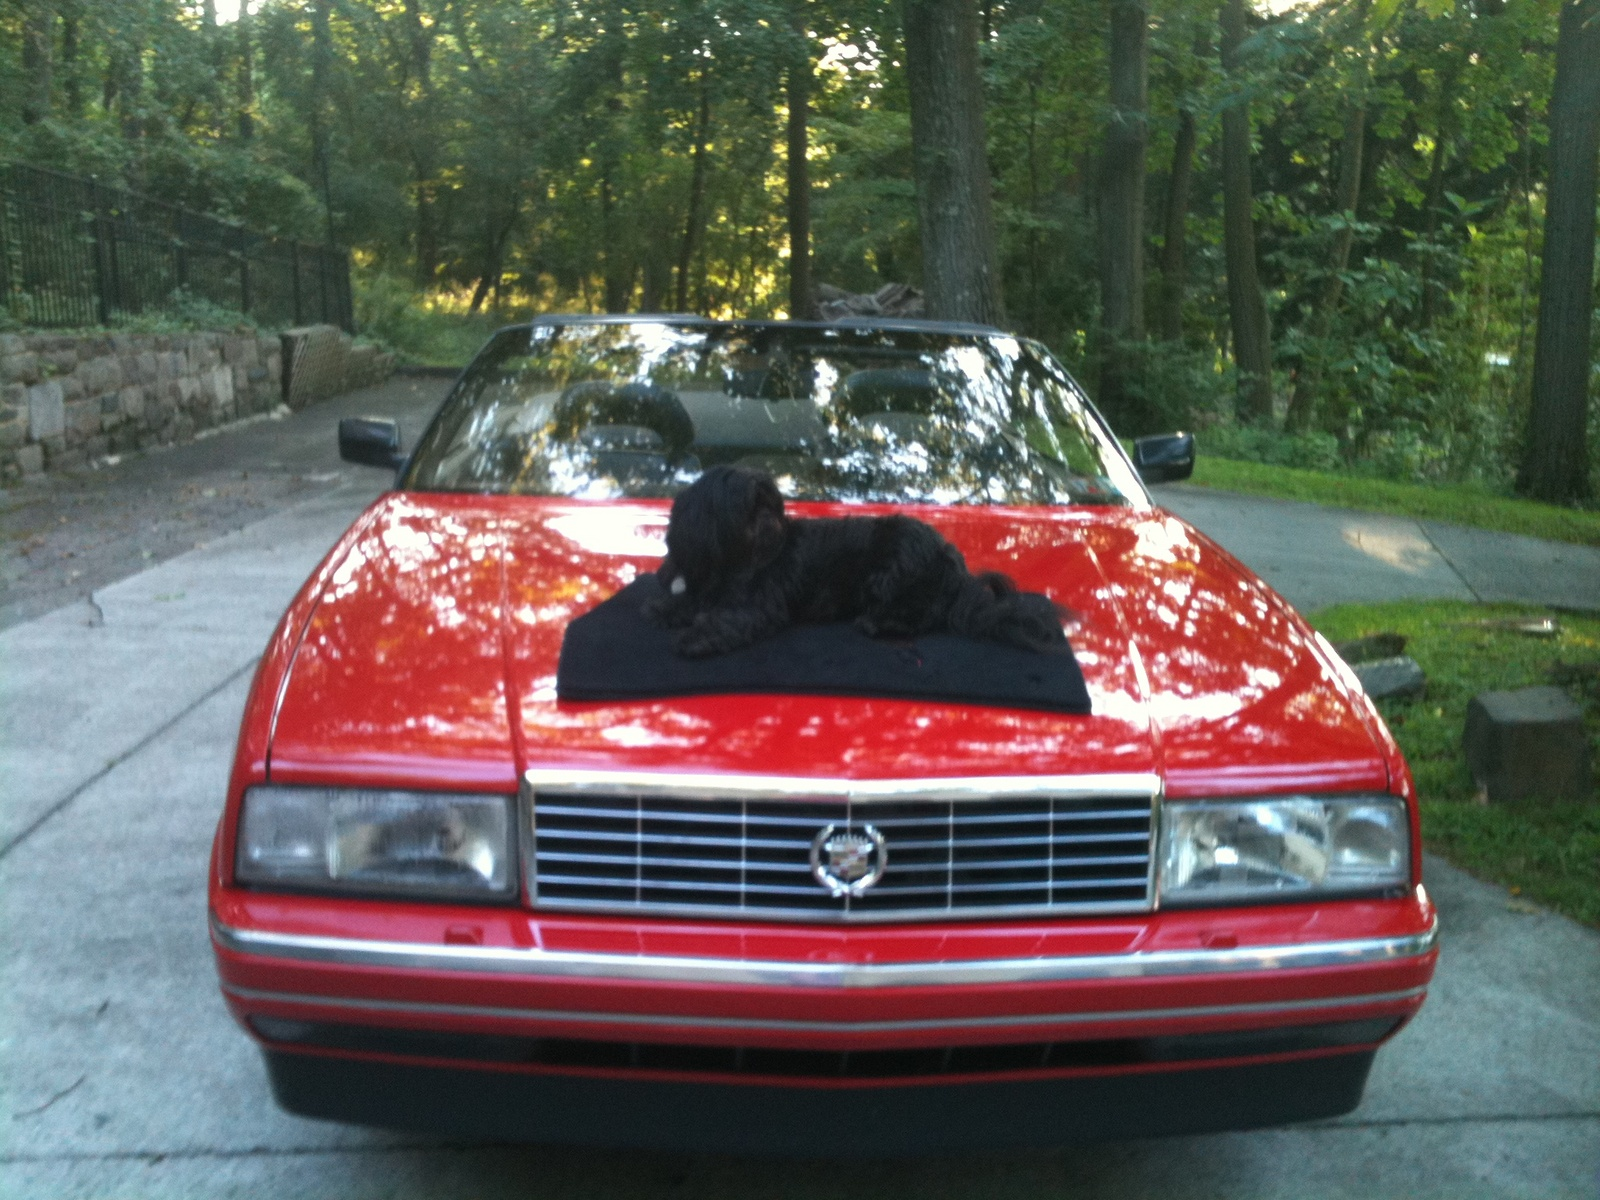 1992 Cadillac Allante   pictures, information and specs - Auto